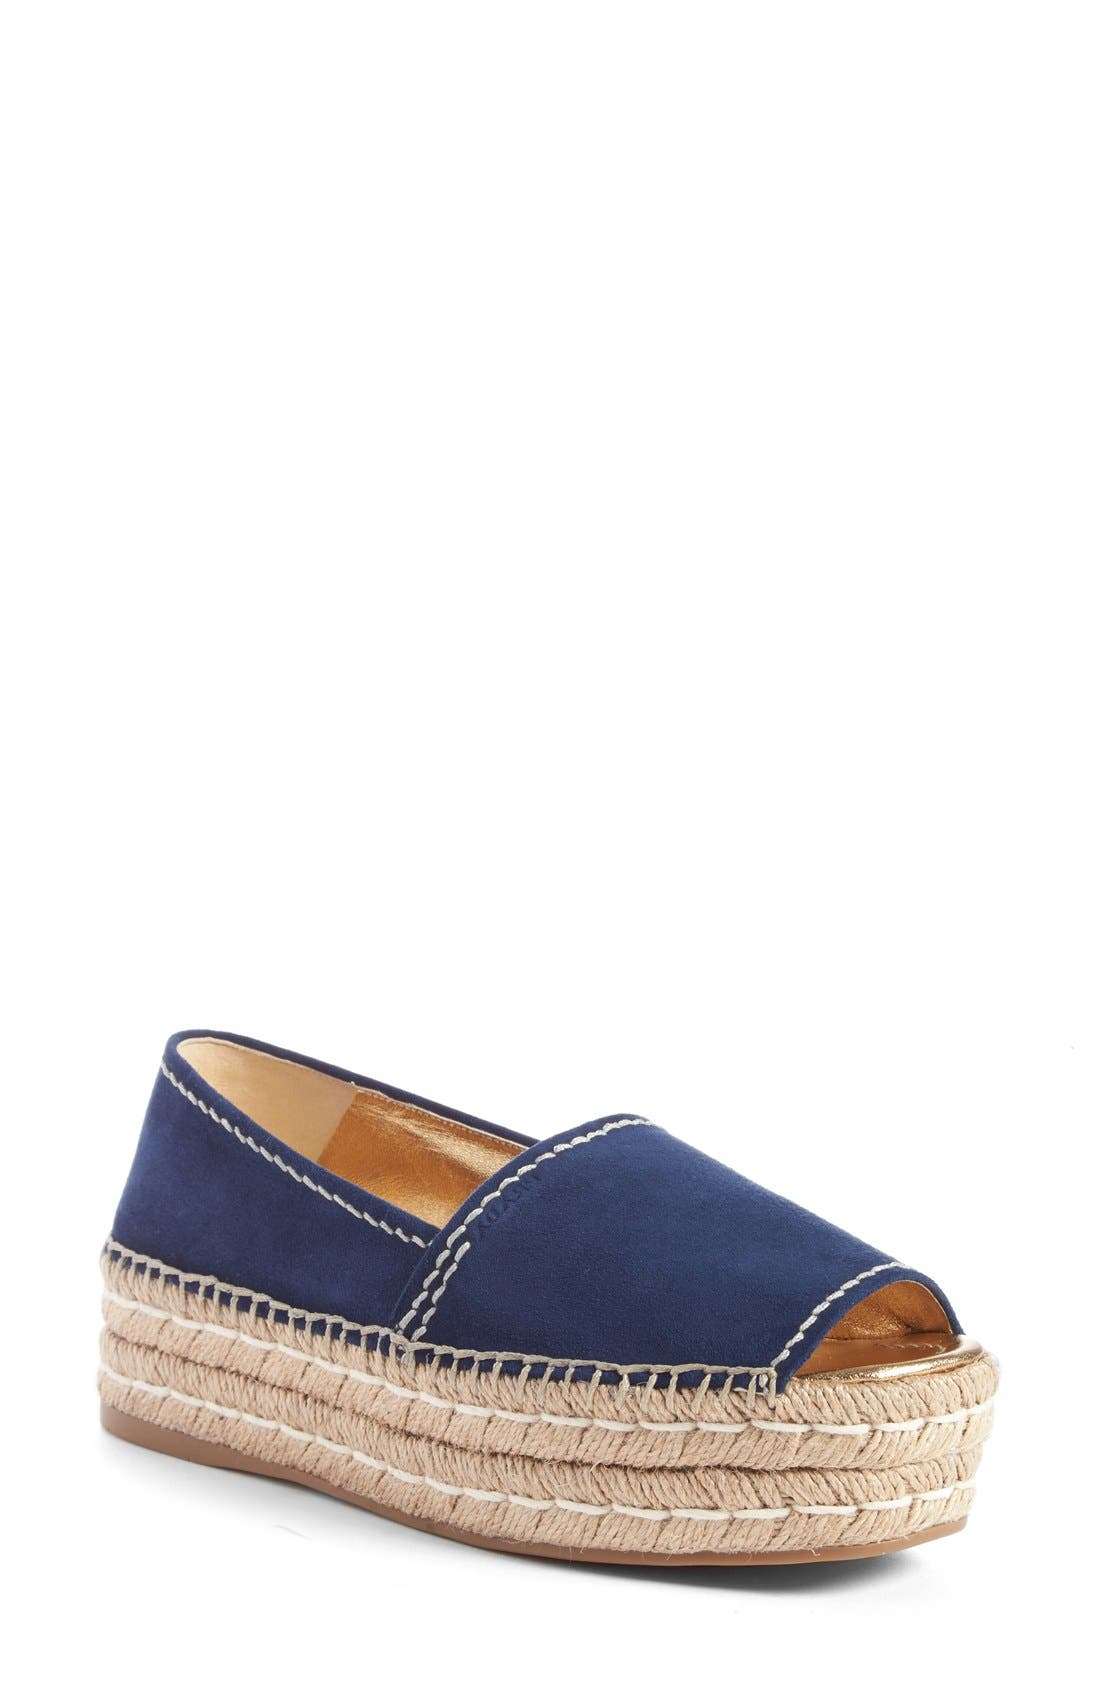 PRADA Peep Toe Leather Espadrille